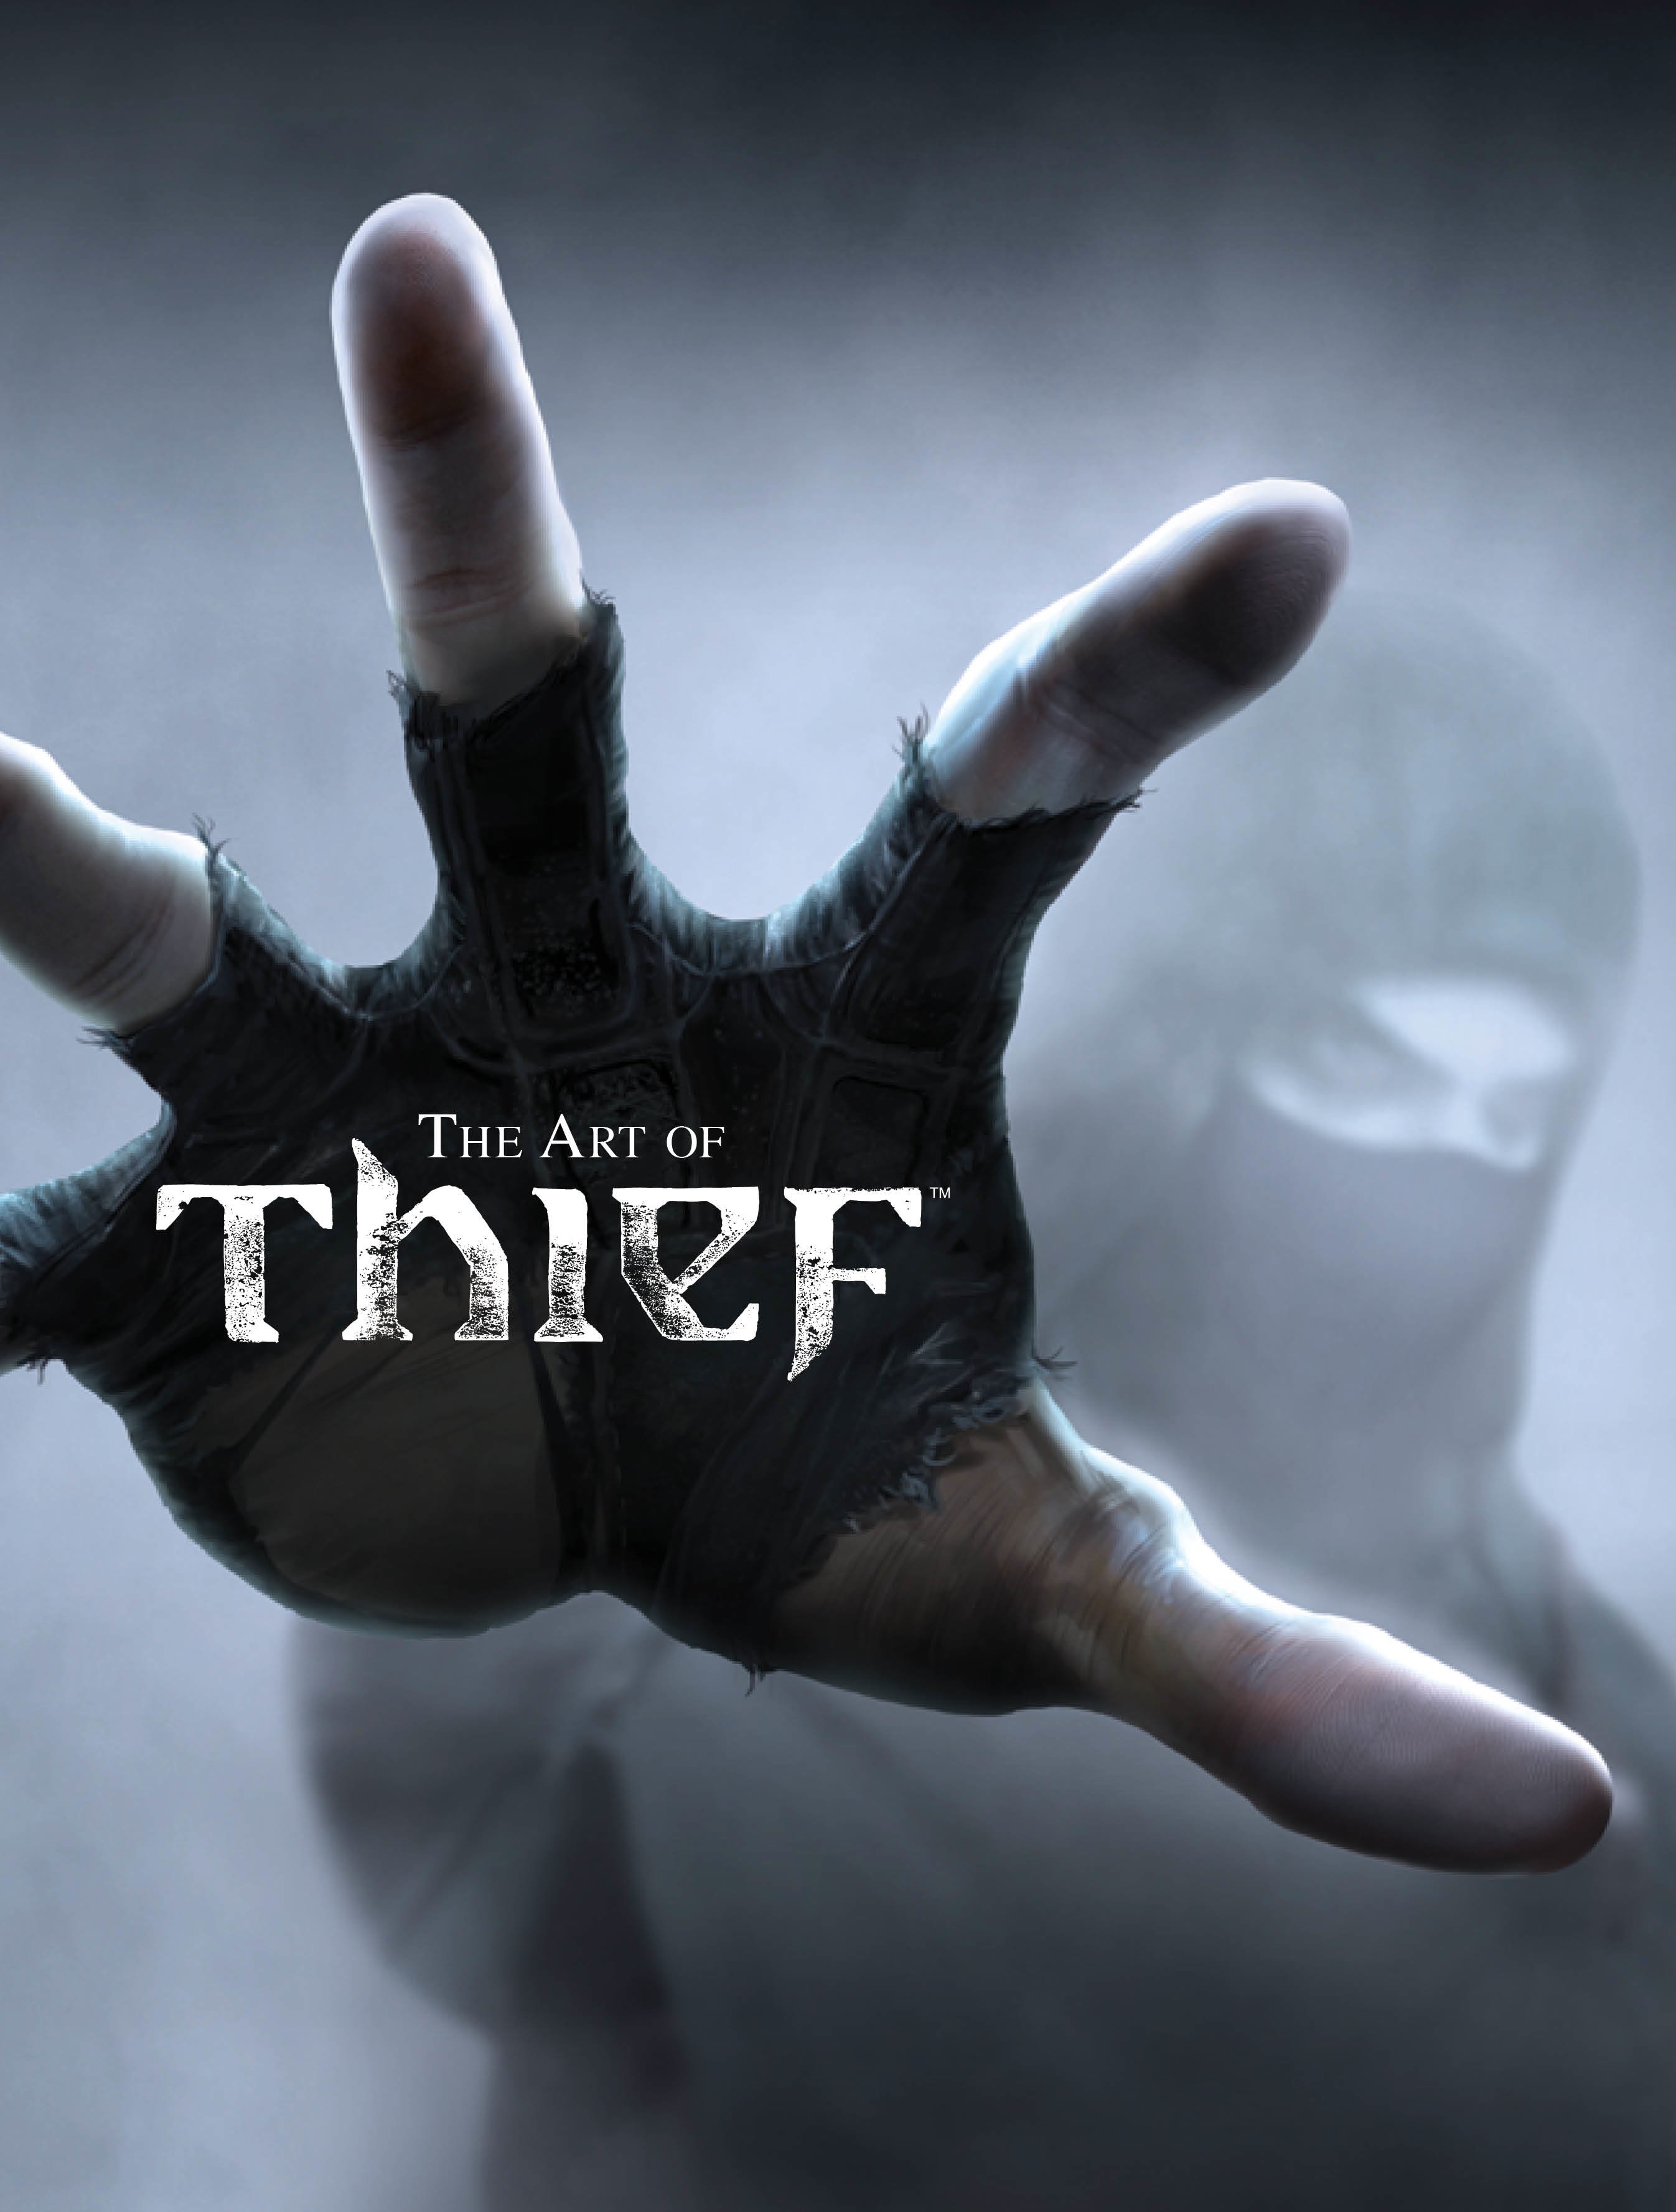 How the art of Thief became 'The Art of Thief'